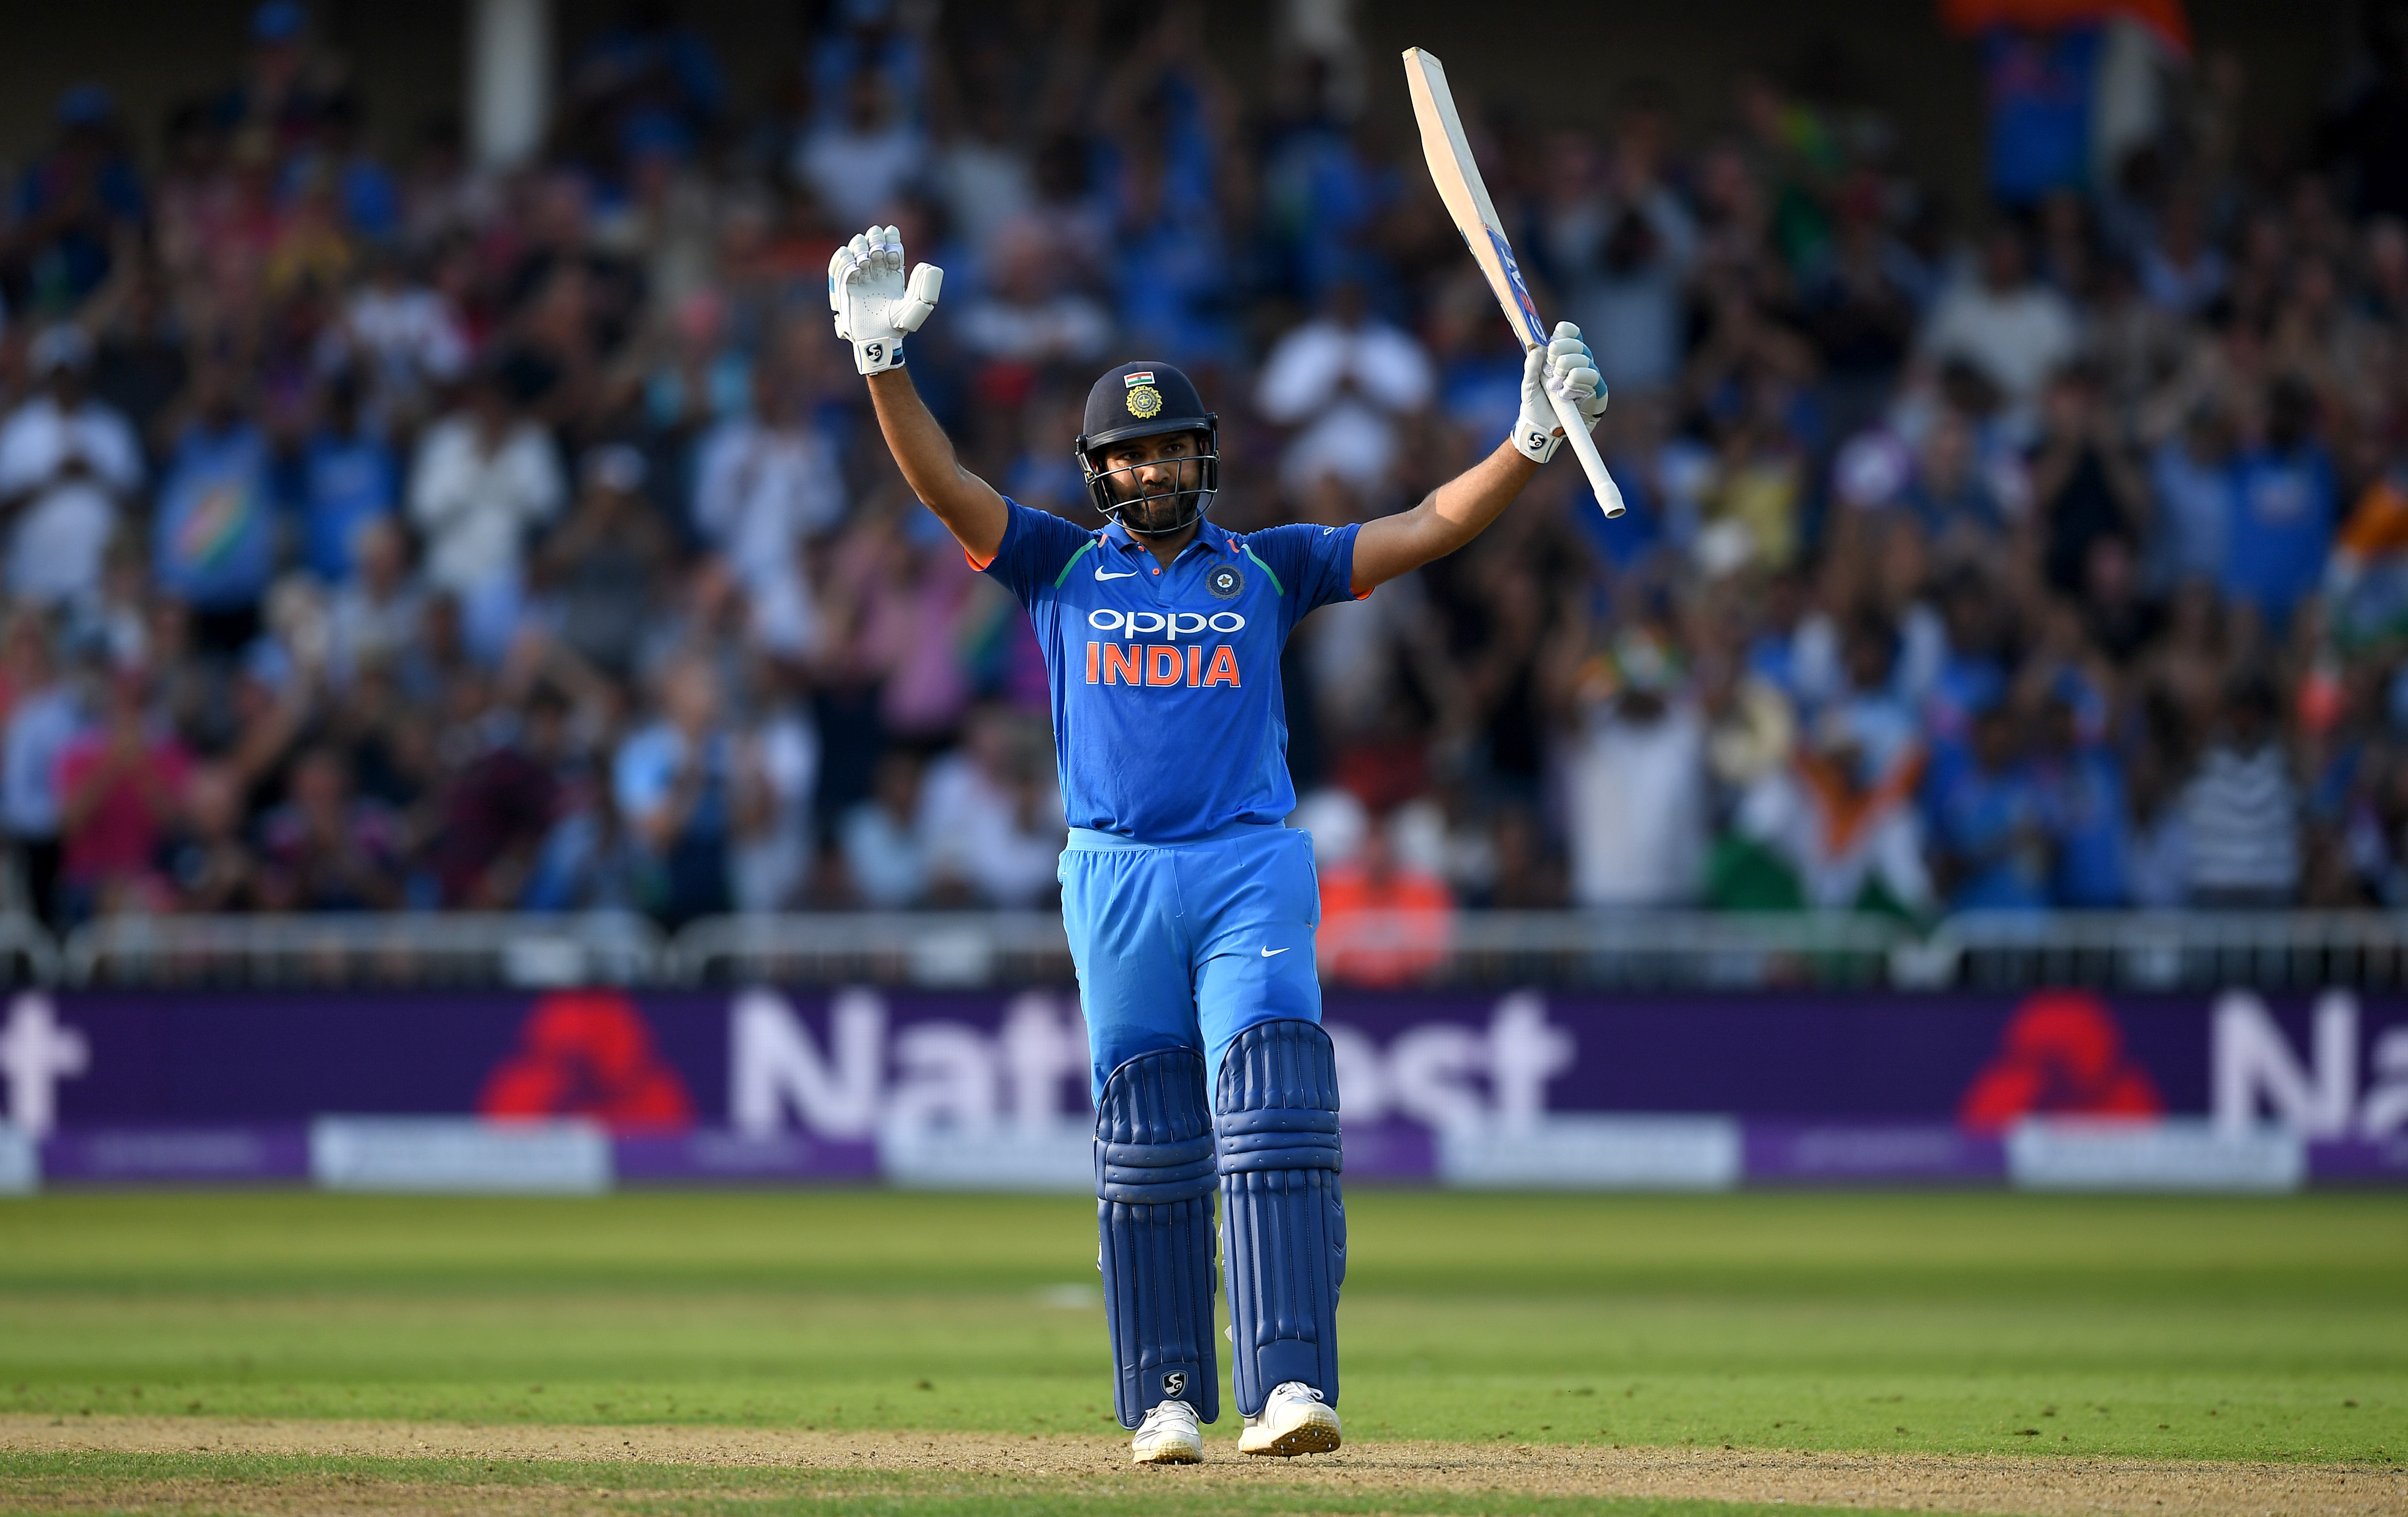 Rohit Sharma celebrates reaching his century in the first ODI against England at Trent Bridge | Getty